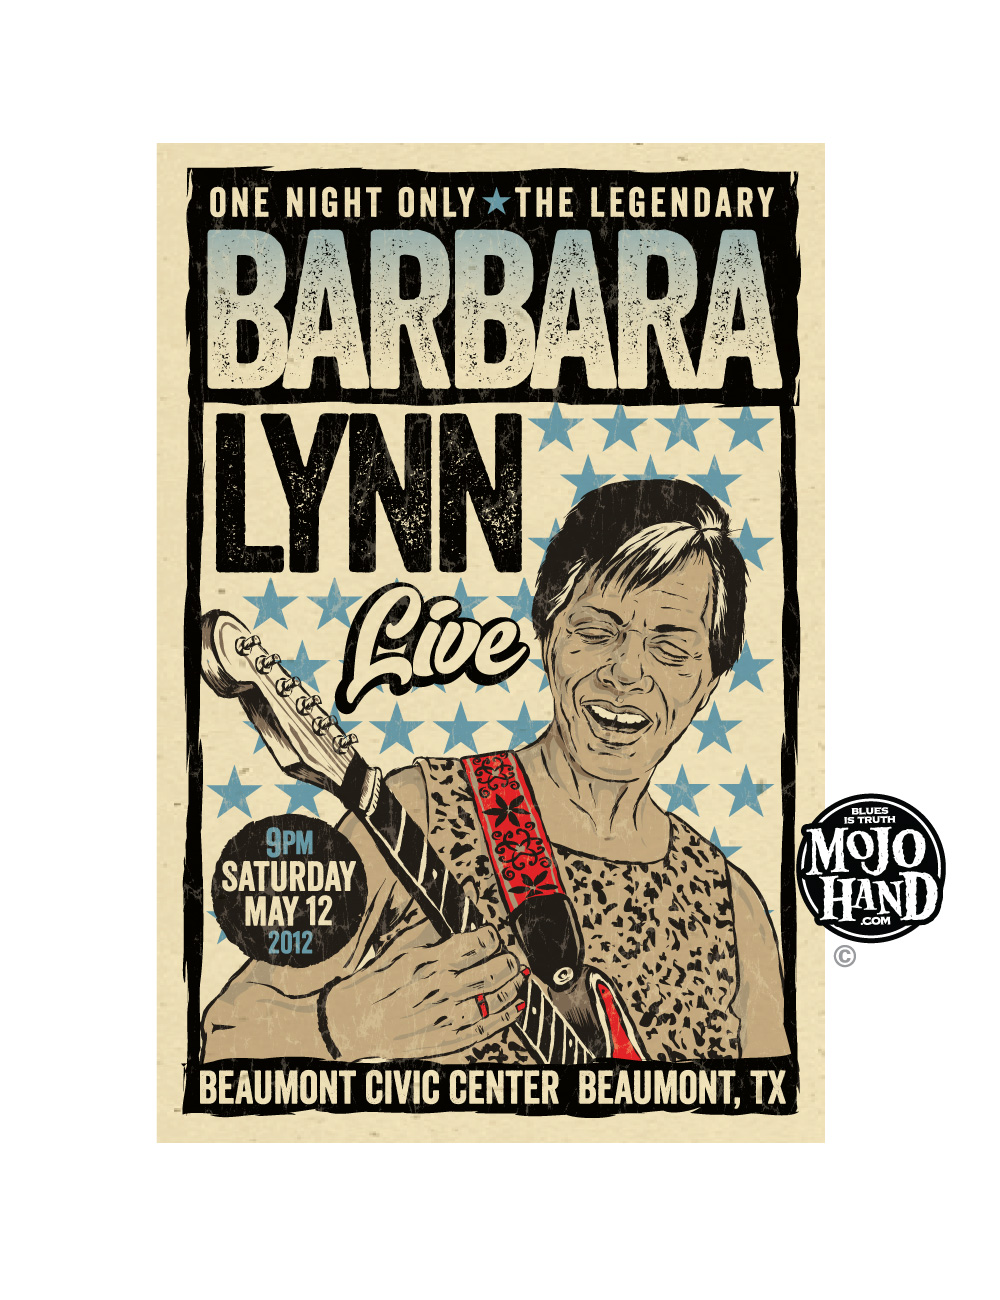 Barbara Lynn concert poster for sale - the soul and blues queen from a 2012 show - only available at Mojohand.com - just $20 with Free US shipping